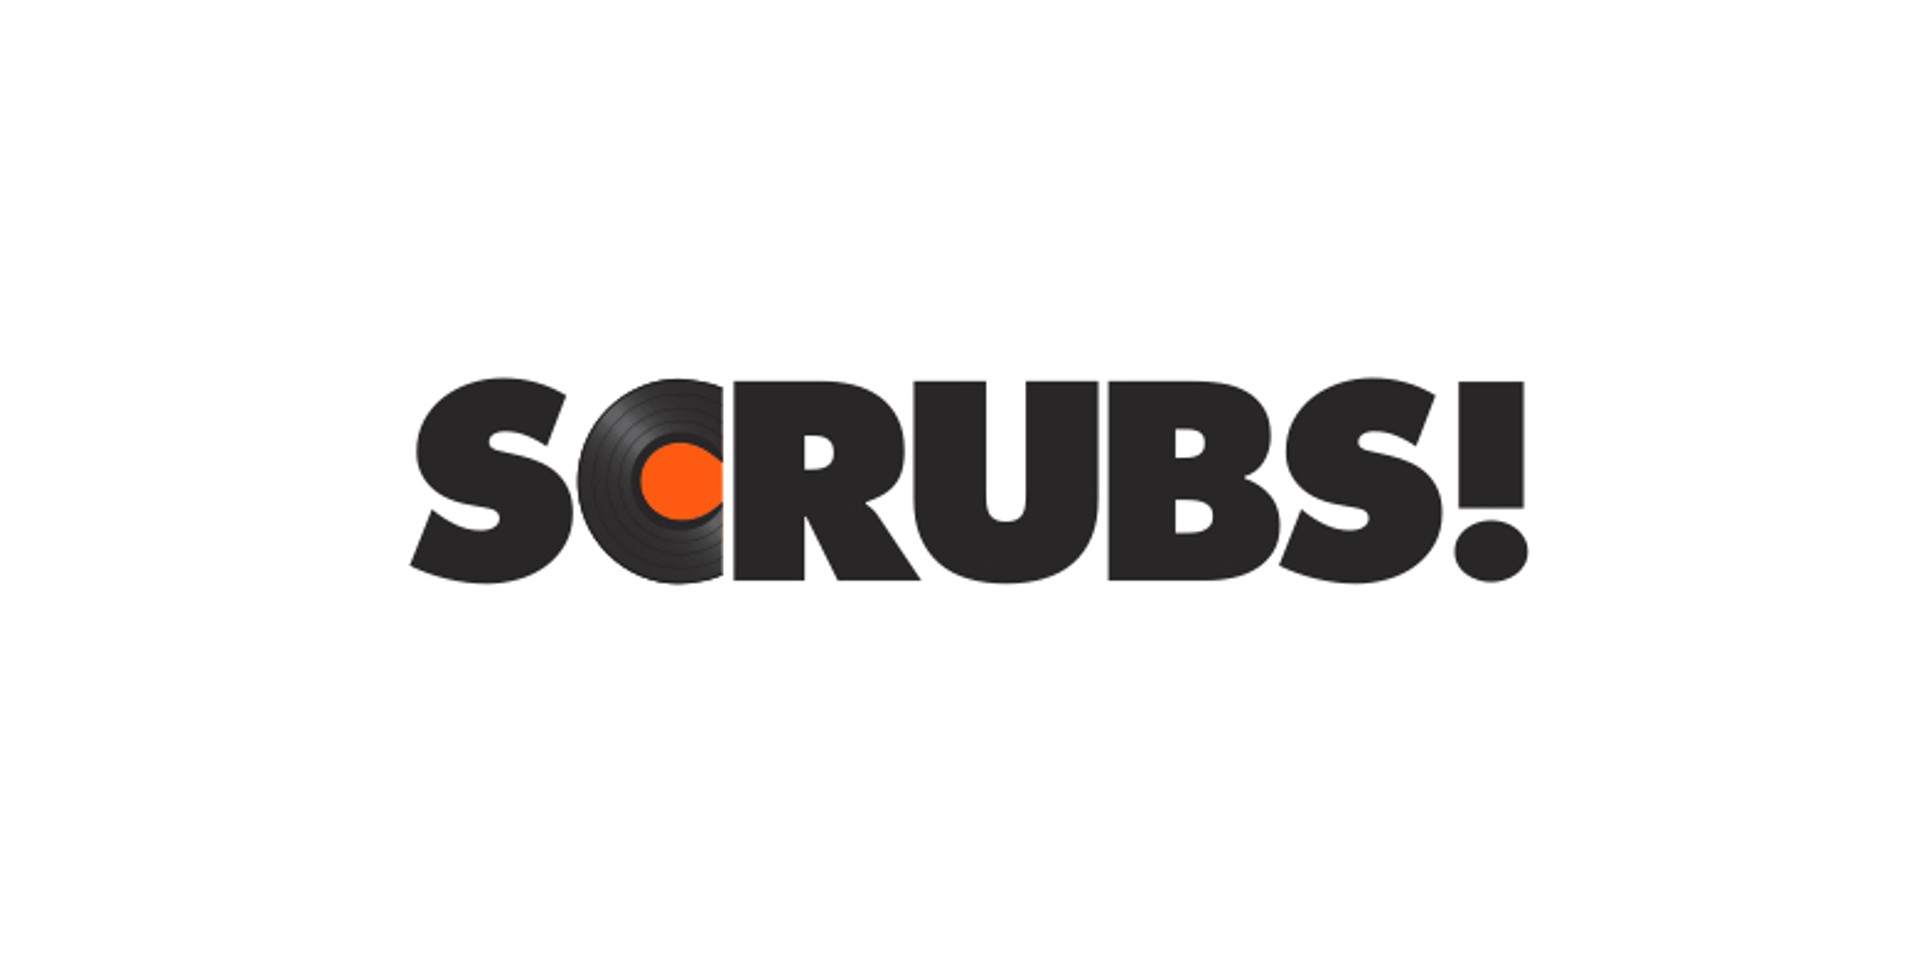 Jakarta-based collective SCRUBS! to throw 2nd anniversary